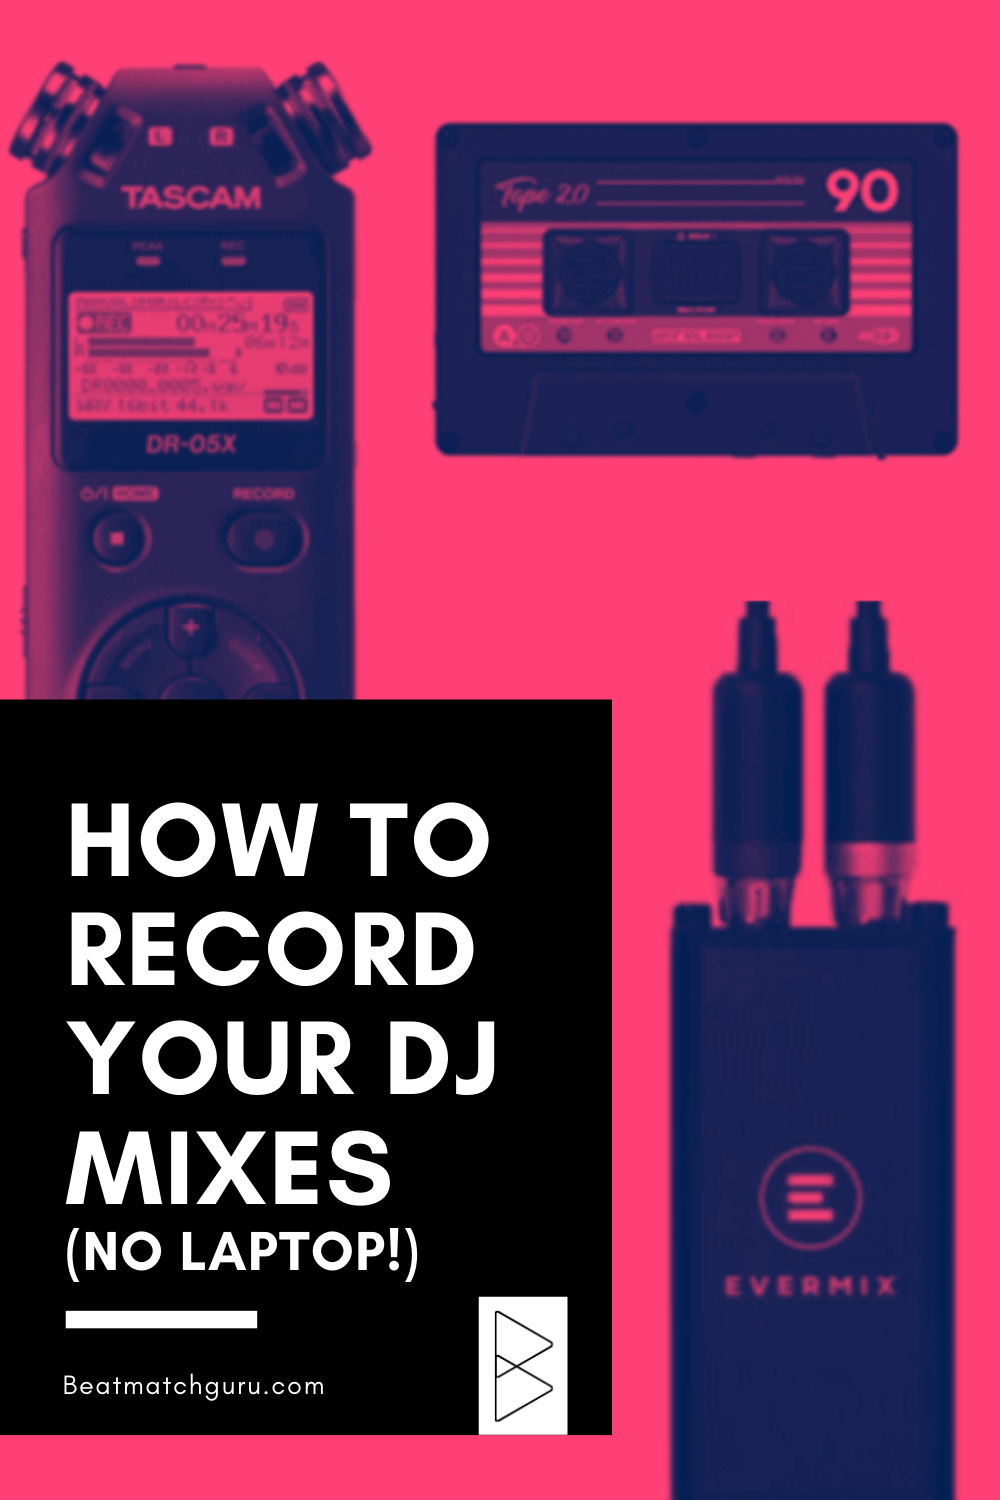 How To Record Your Dj Mixes Without A Laptop In 2020 Dj Records Learn Music